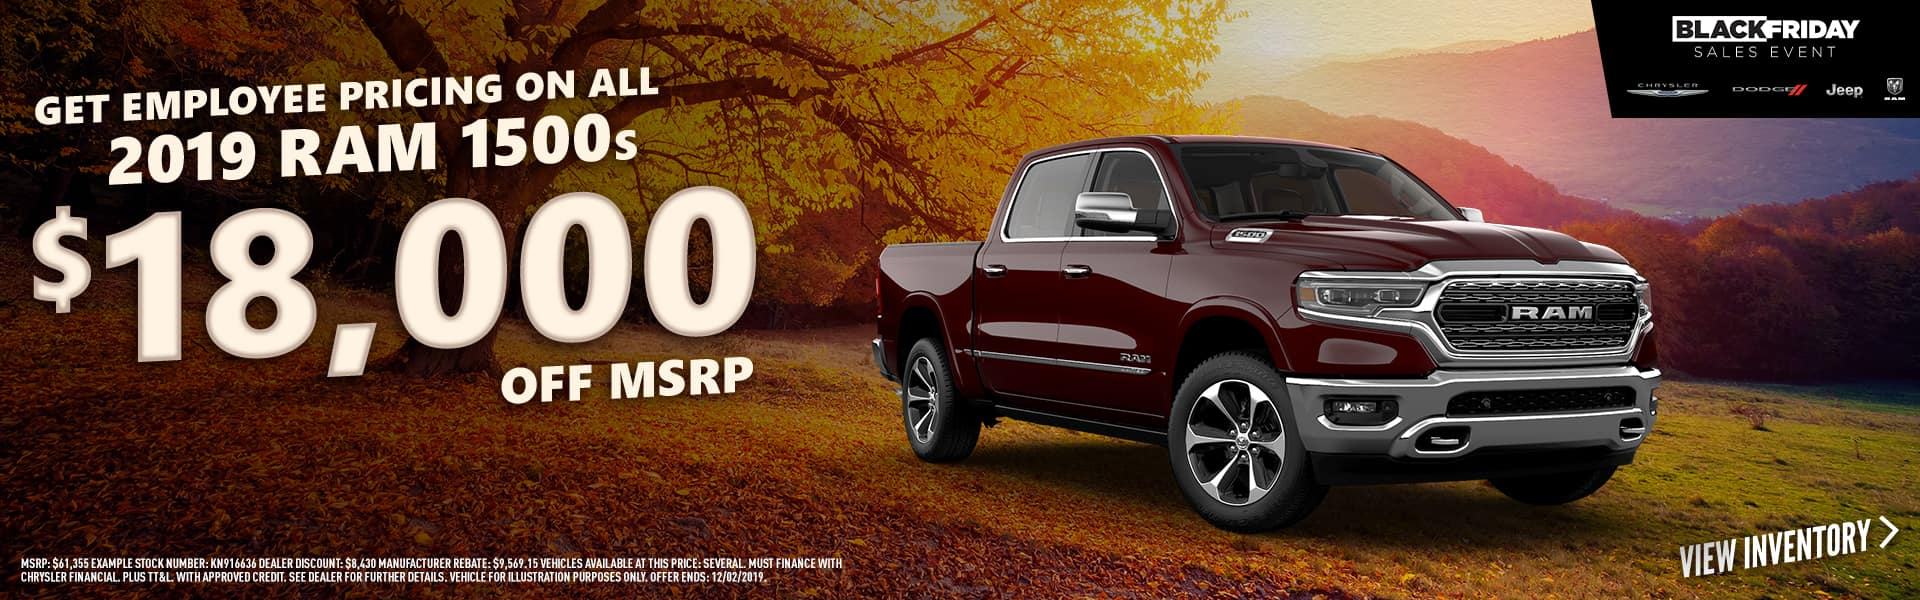 2019 RAM 1500s - $18,000 off with Employee Pricing